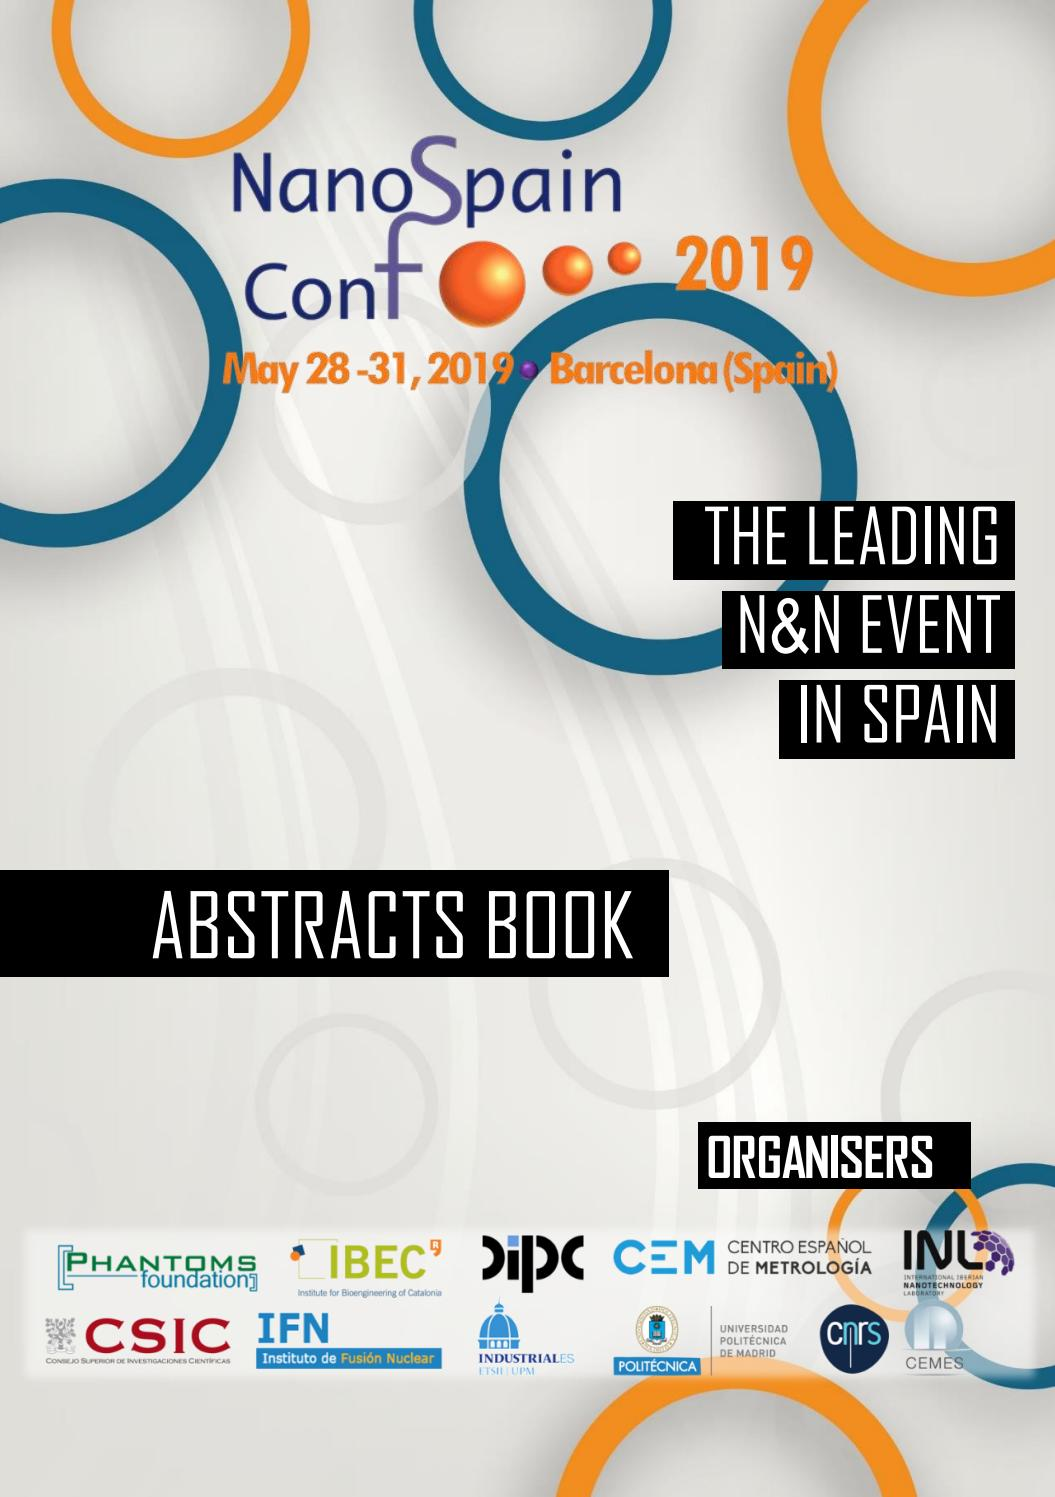 NanoSpain Conference 2019 Abstracts Book by Phantoms